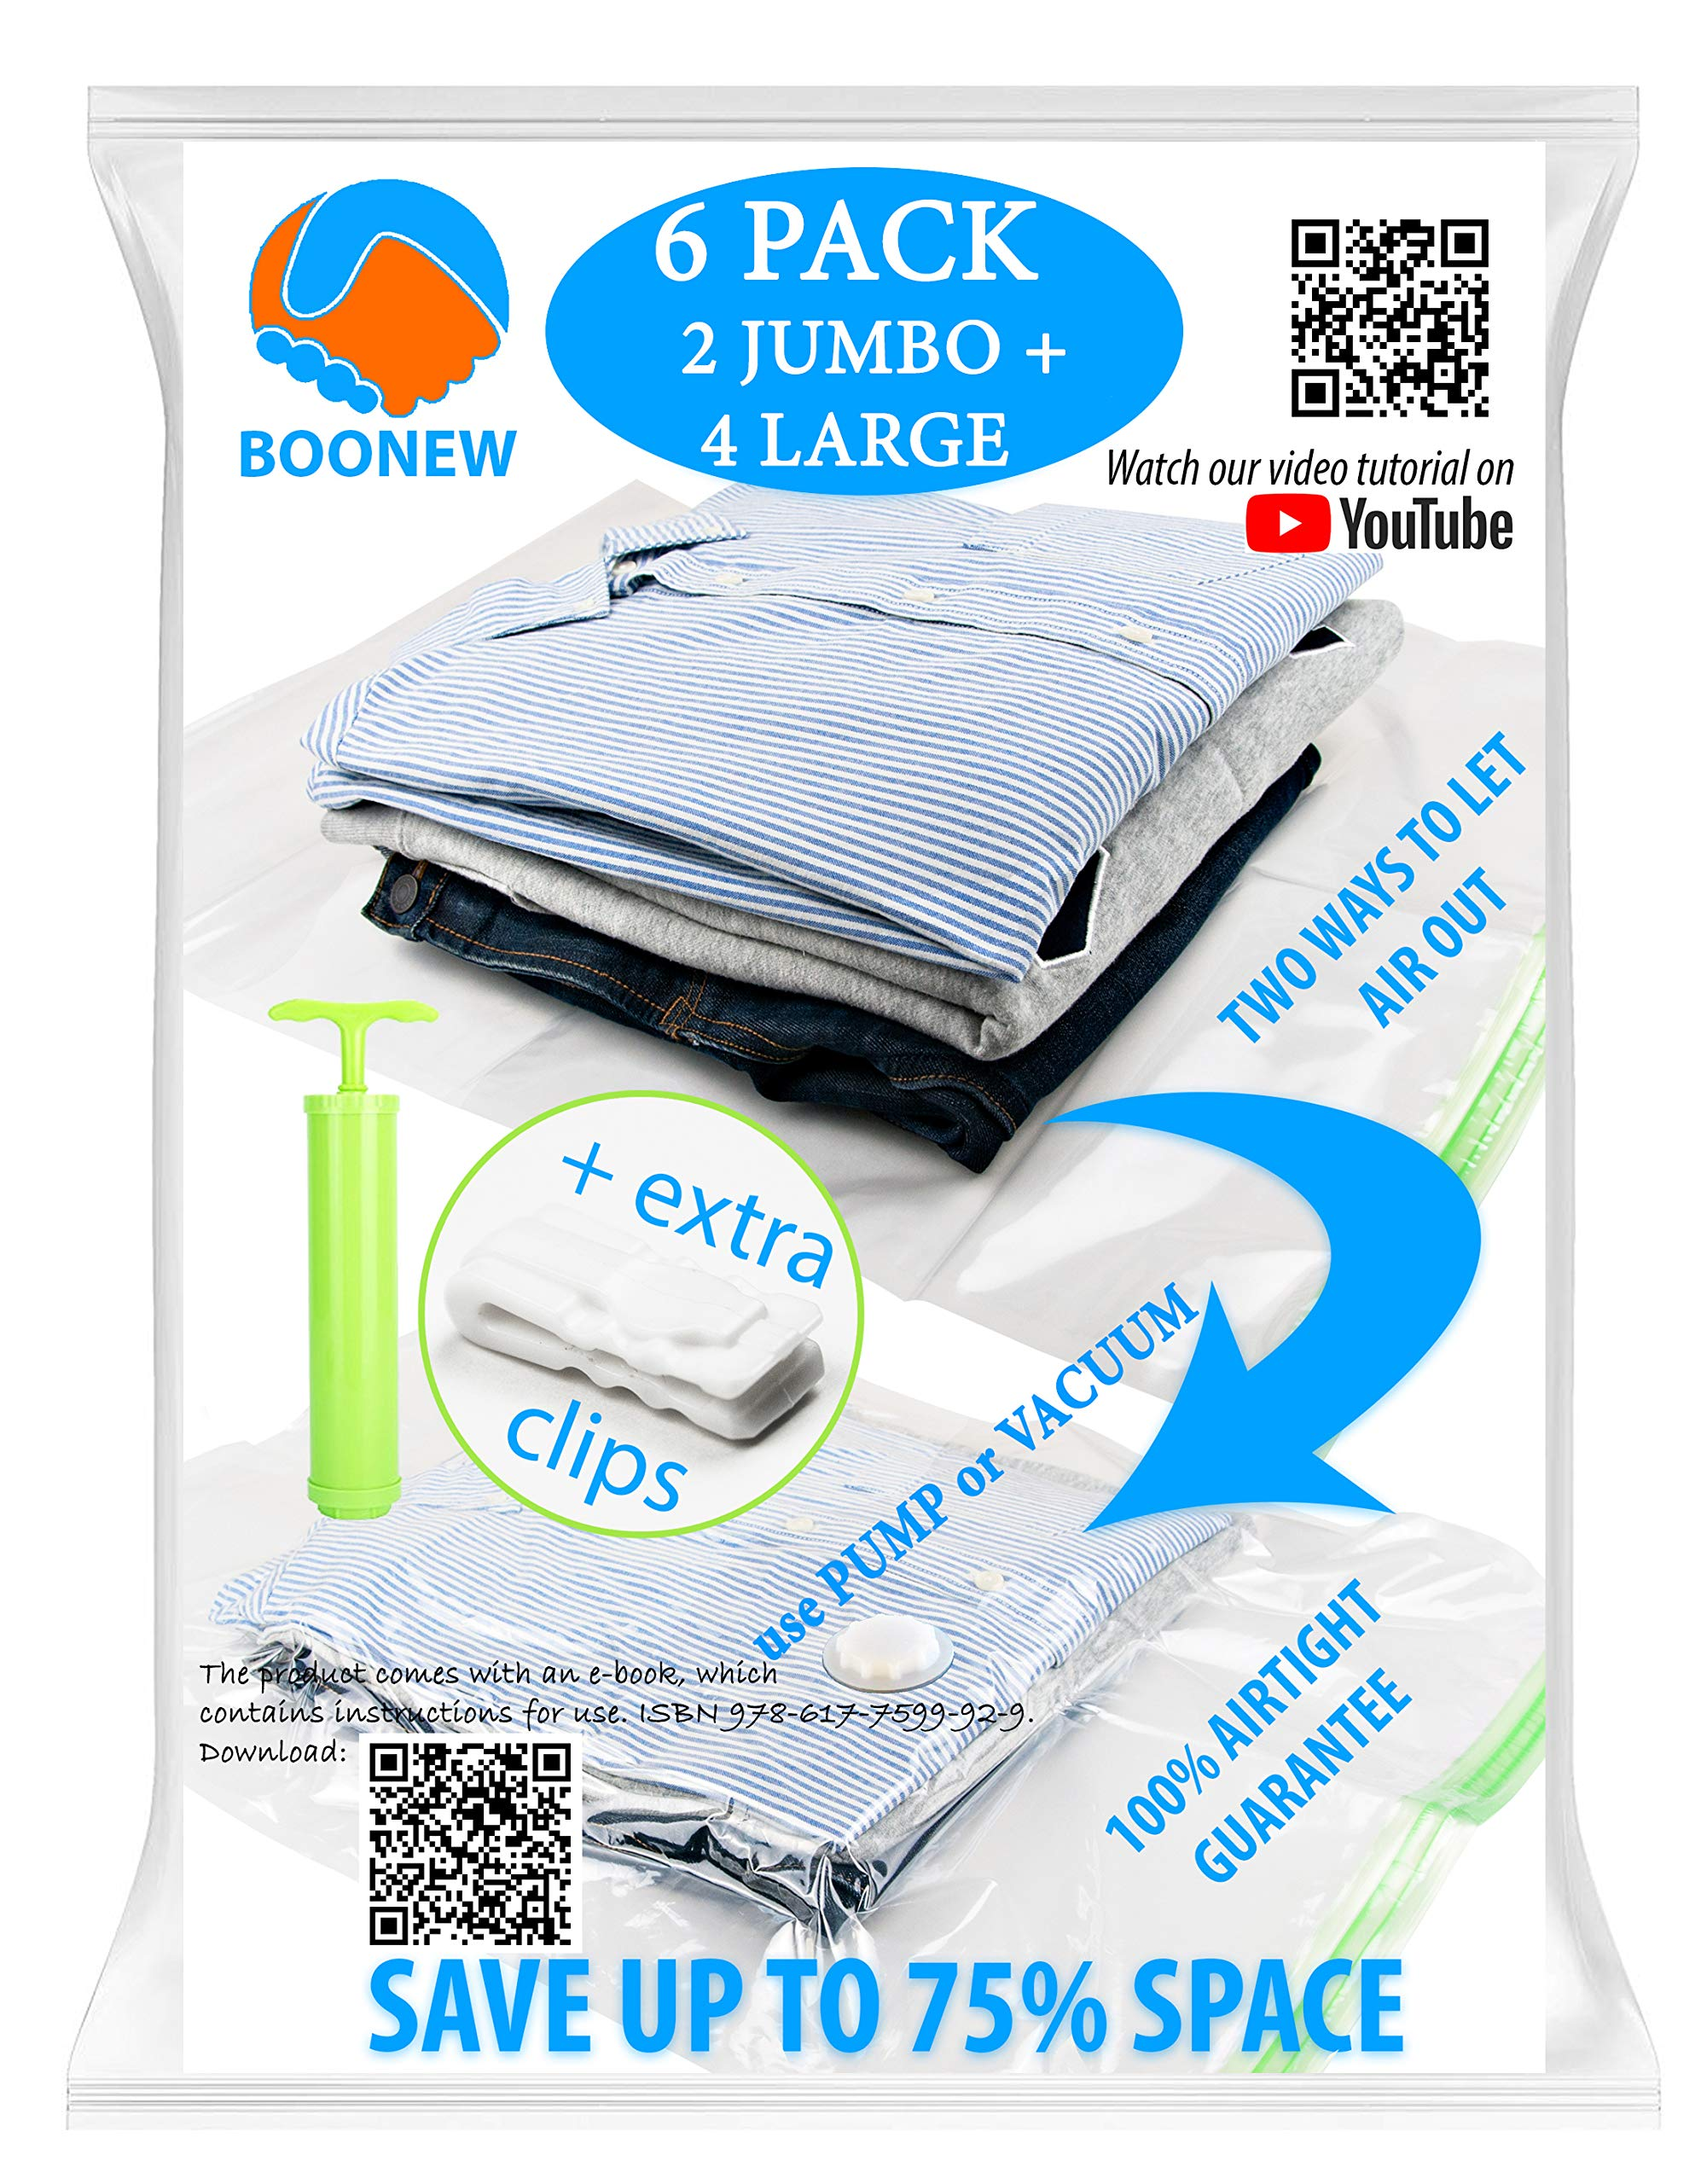 """Boonew Durable 2 Jumbo + 4 Large Vacuum Storage Bags for Clothes, Bedding, Pillows, Space Saver Compression Sacks Size 28x40"""" + 28x20"""" (Pack of 6)"""